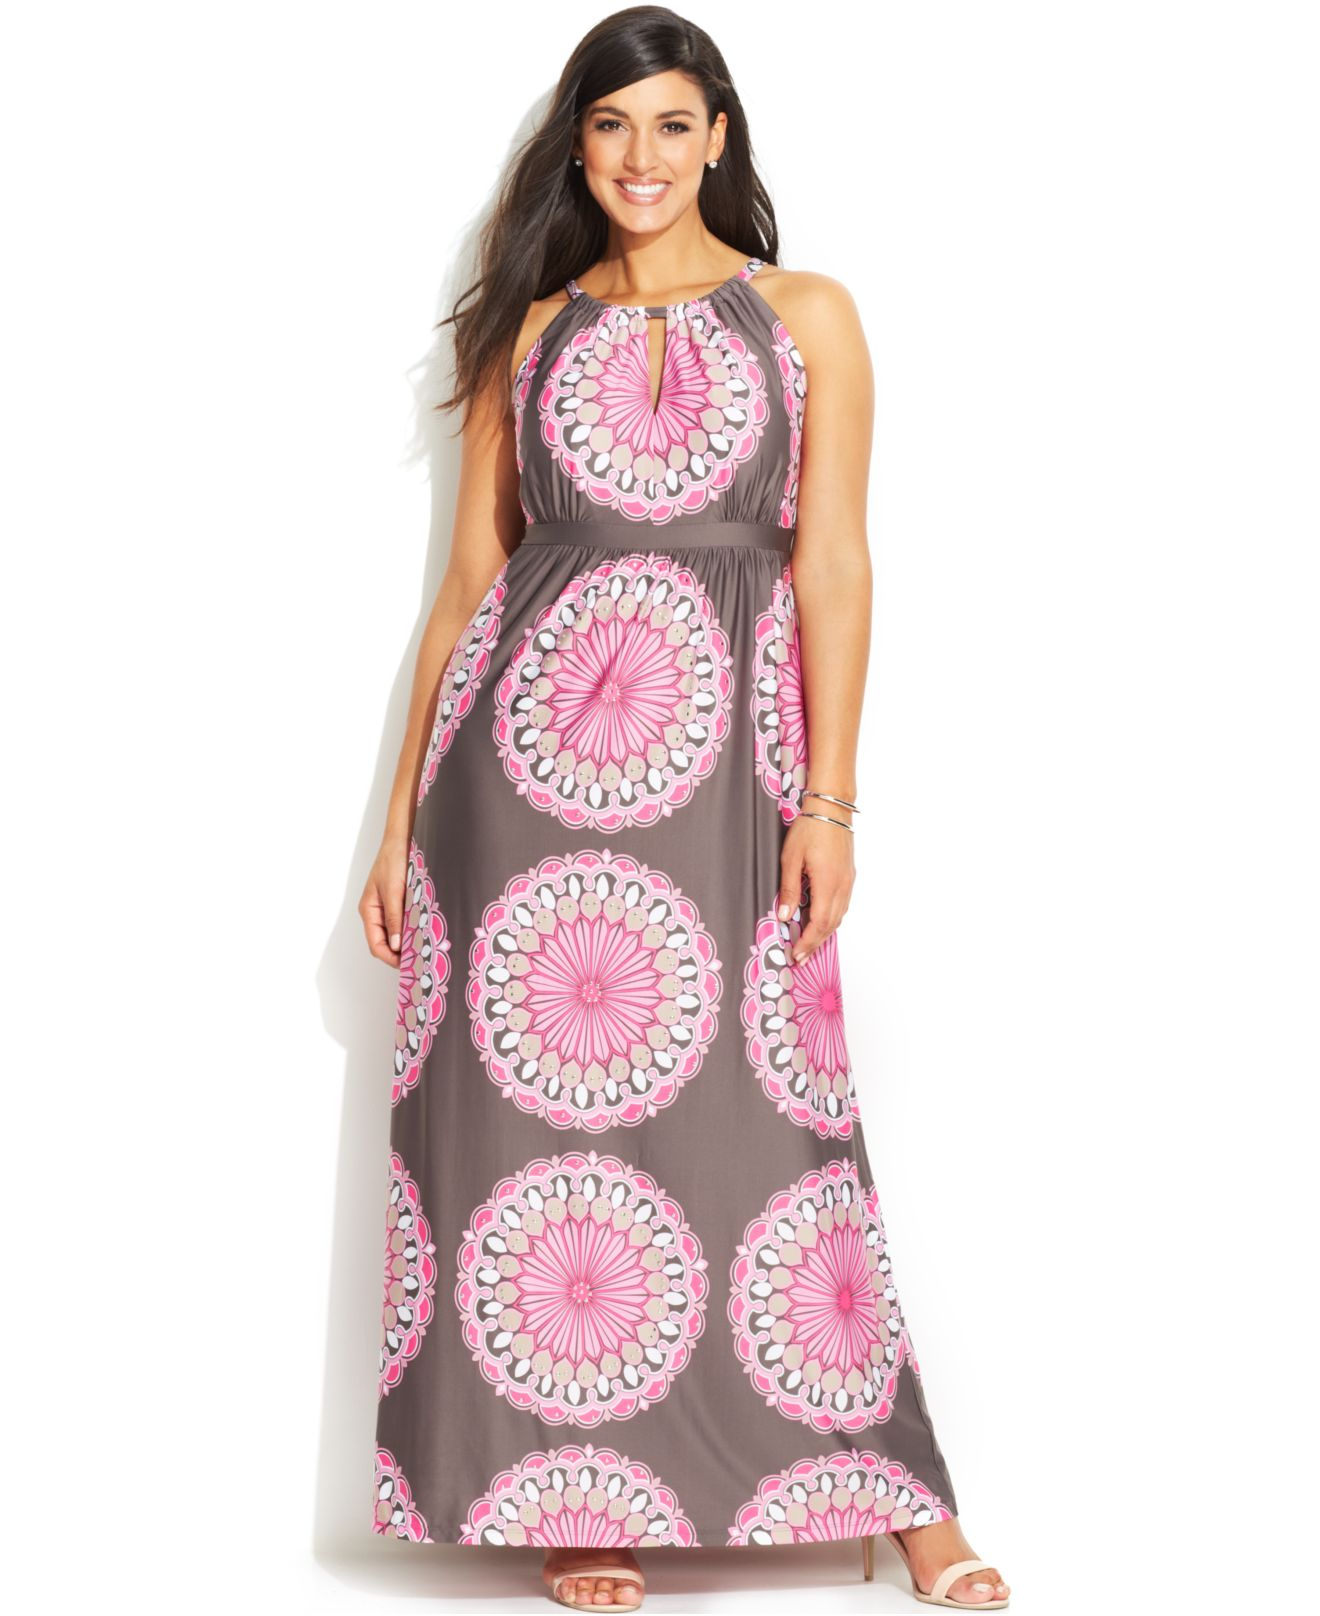 b0207f2bb402e Lyst - INC International Concepts Plus Size Printed Keyhole Maxi Dress